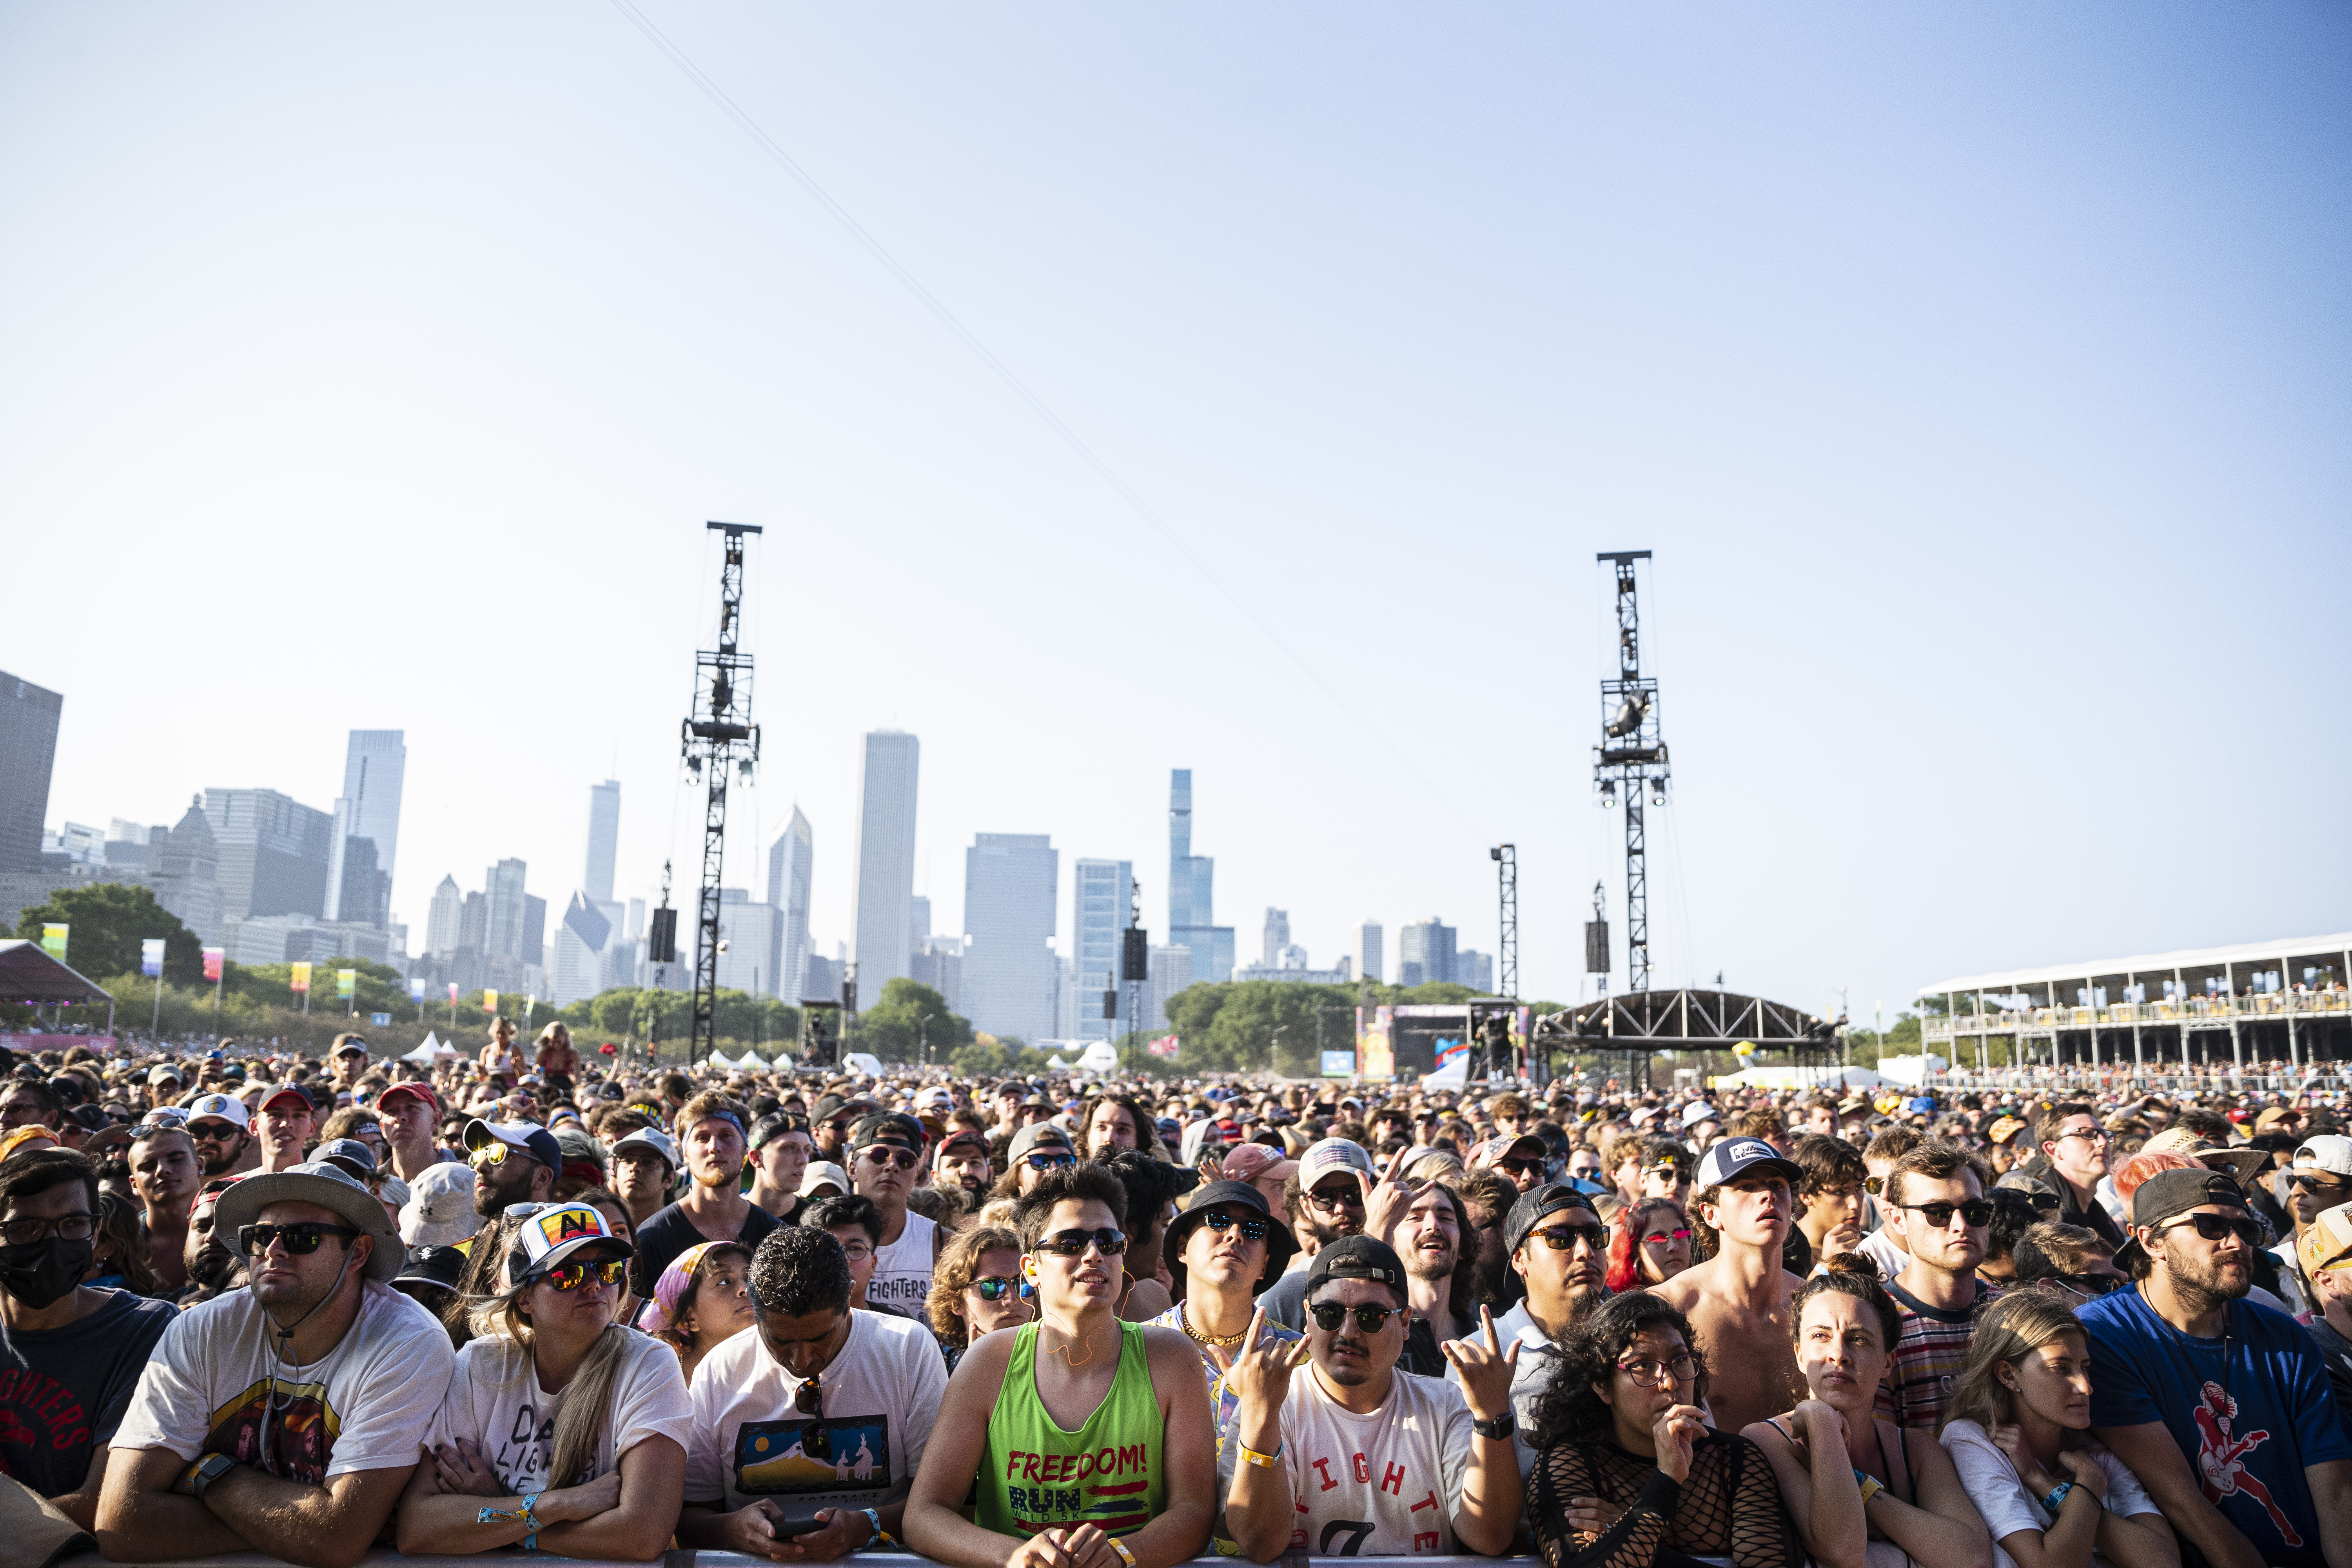 Fans of Modest Mouse listen to the band on day four of Lollapalooza.